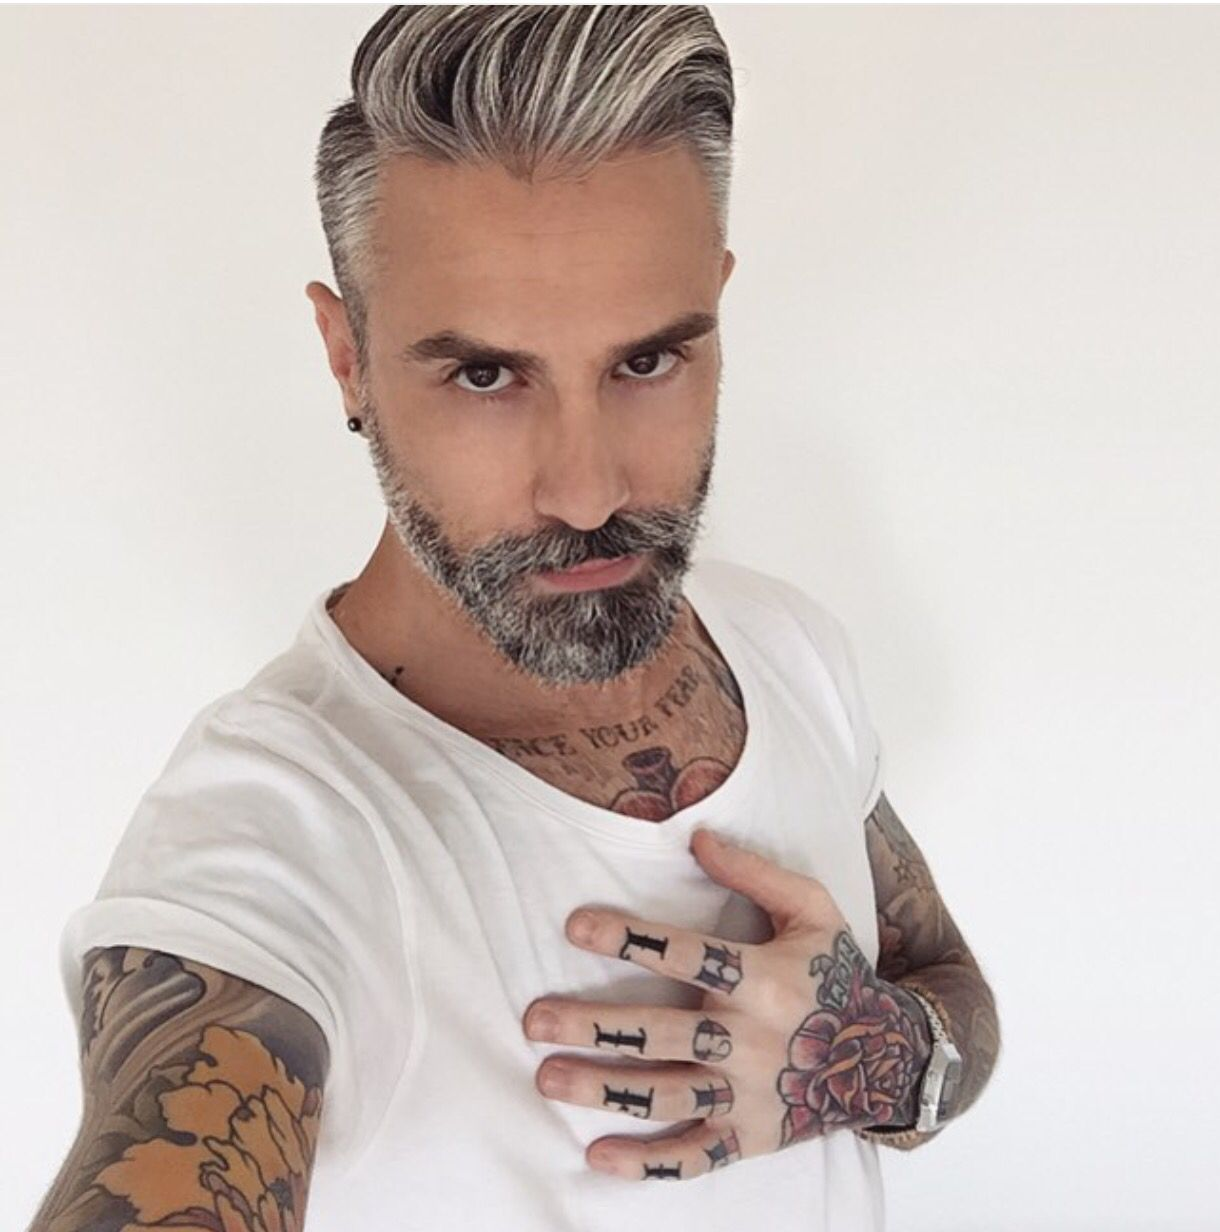 Haircuts for men over 40 grey hair street style funky hair and beard option for when i am